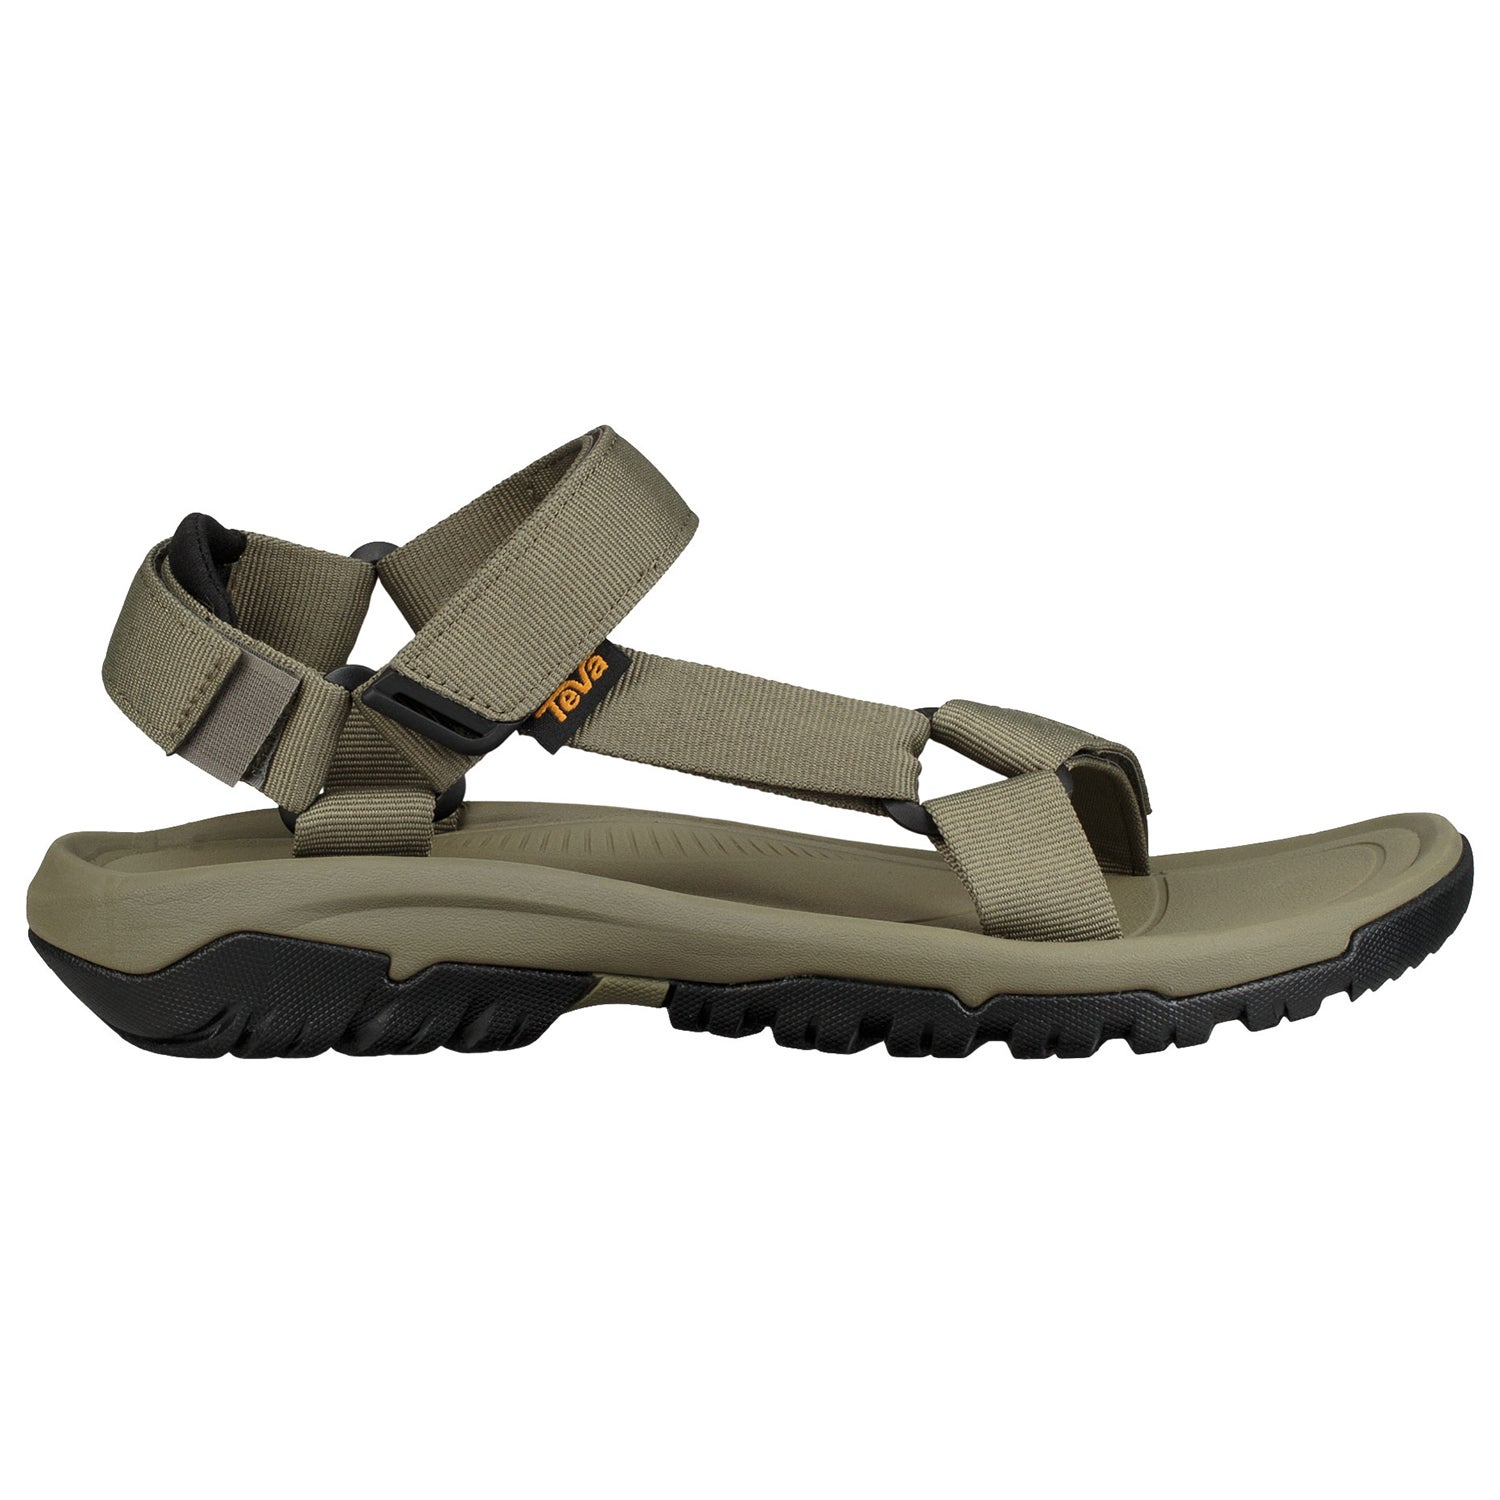 eece477e4500 Teva Hurricane Xlt 2 Mens Footwear Sandals - Dark Olive All Sizes